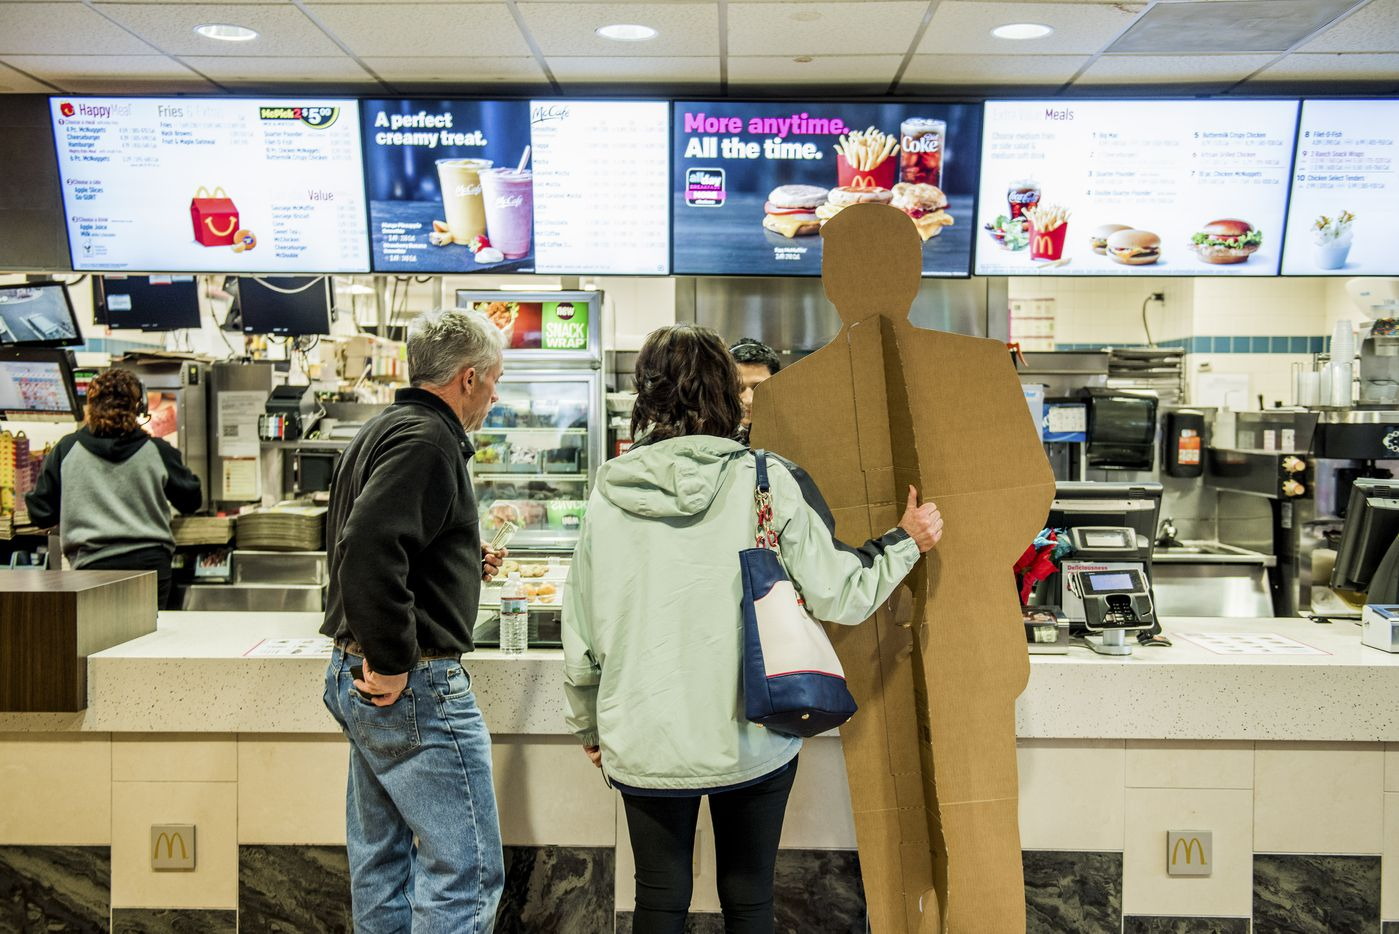 Dianna Ploss holds her Donald Trump cardboard cutout while ordering food with Scott Hayes at a McDonald's in Norwalk, Conn., Jan. 18, 2017. Ploss and her friend, Hayes, drove ten hours to Washington to attend Trump's inauguration.